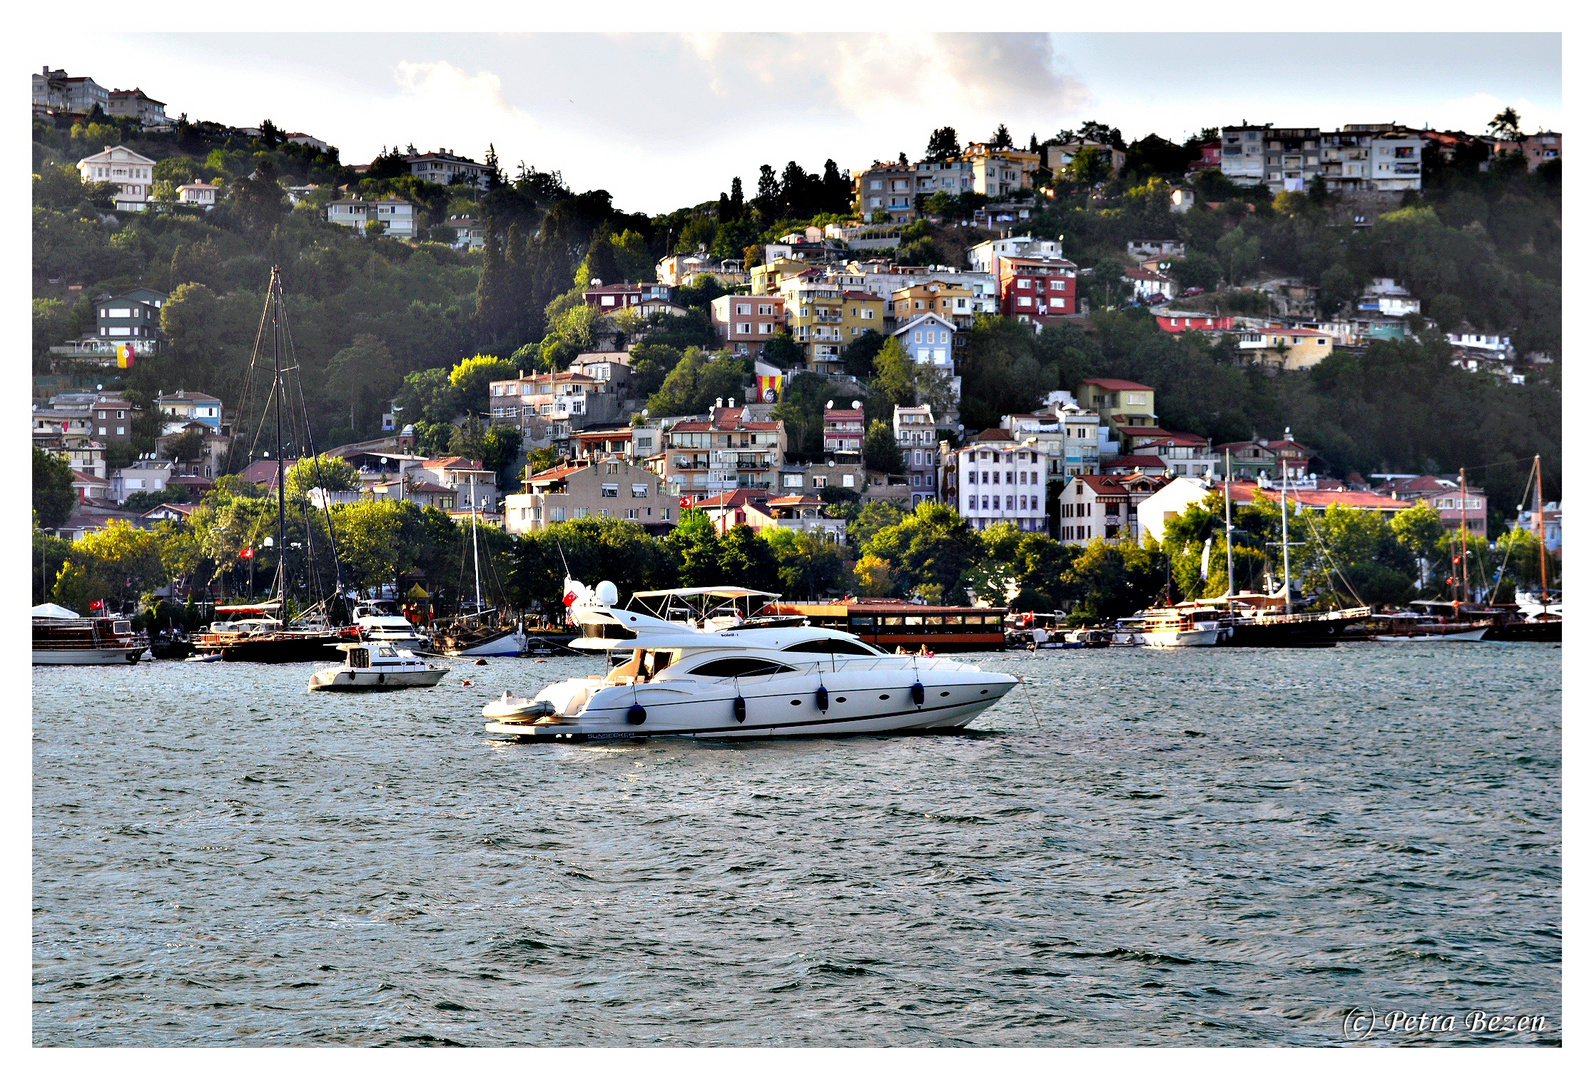 Living at the Bosporus....